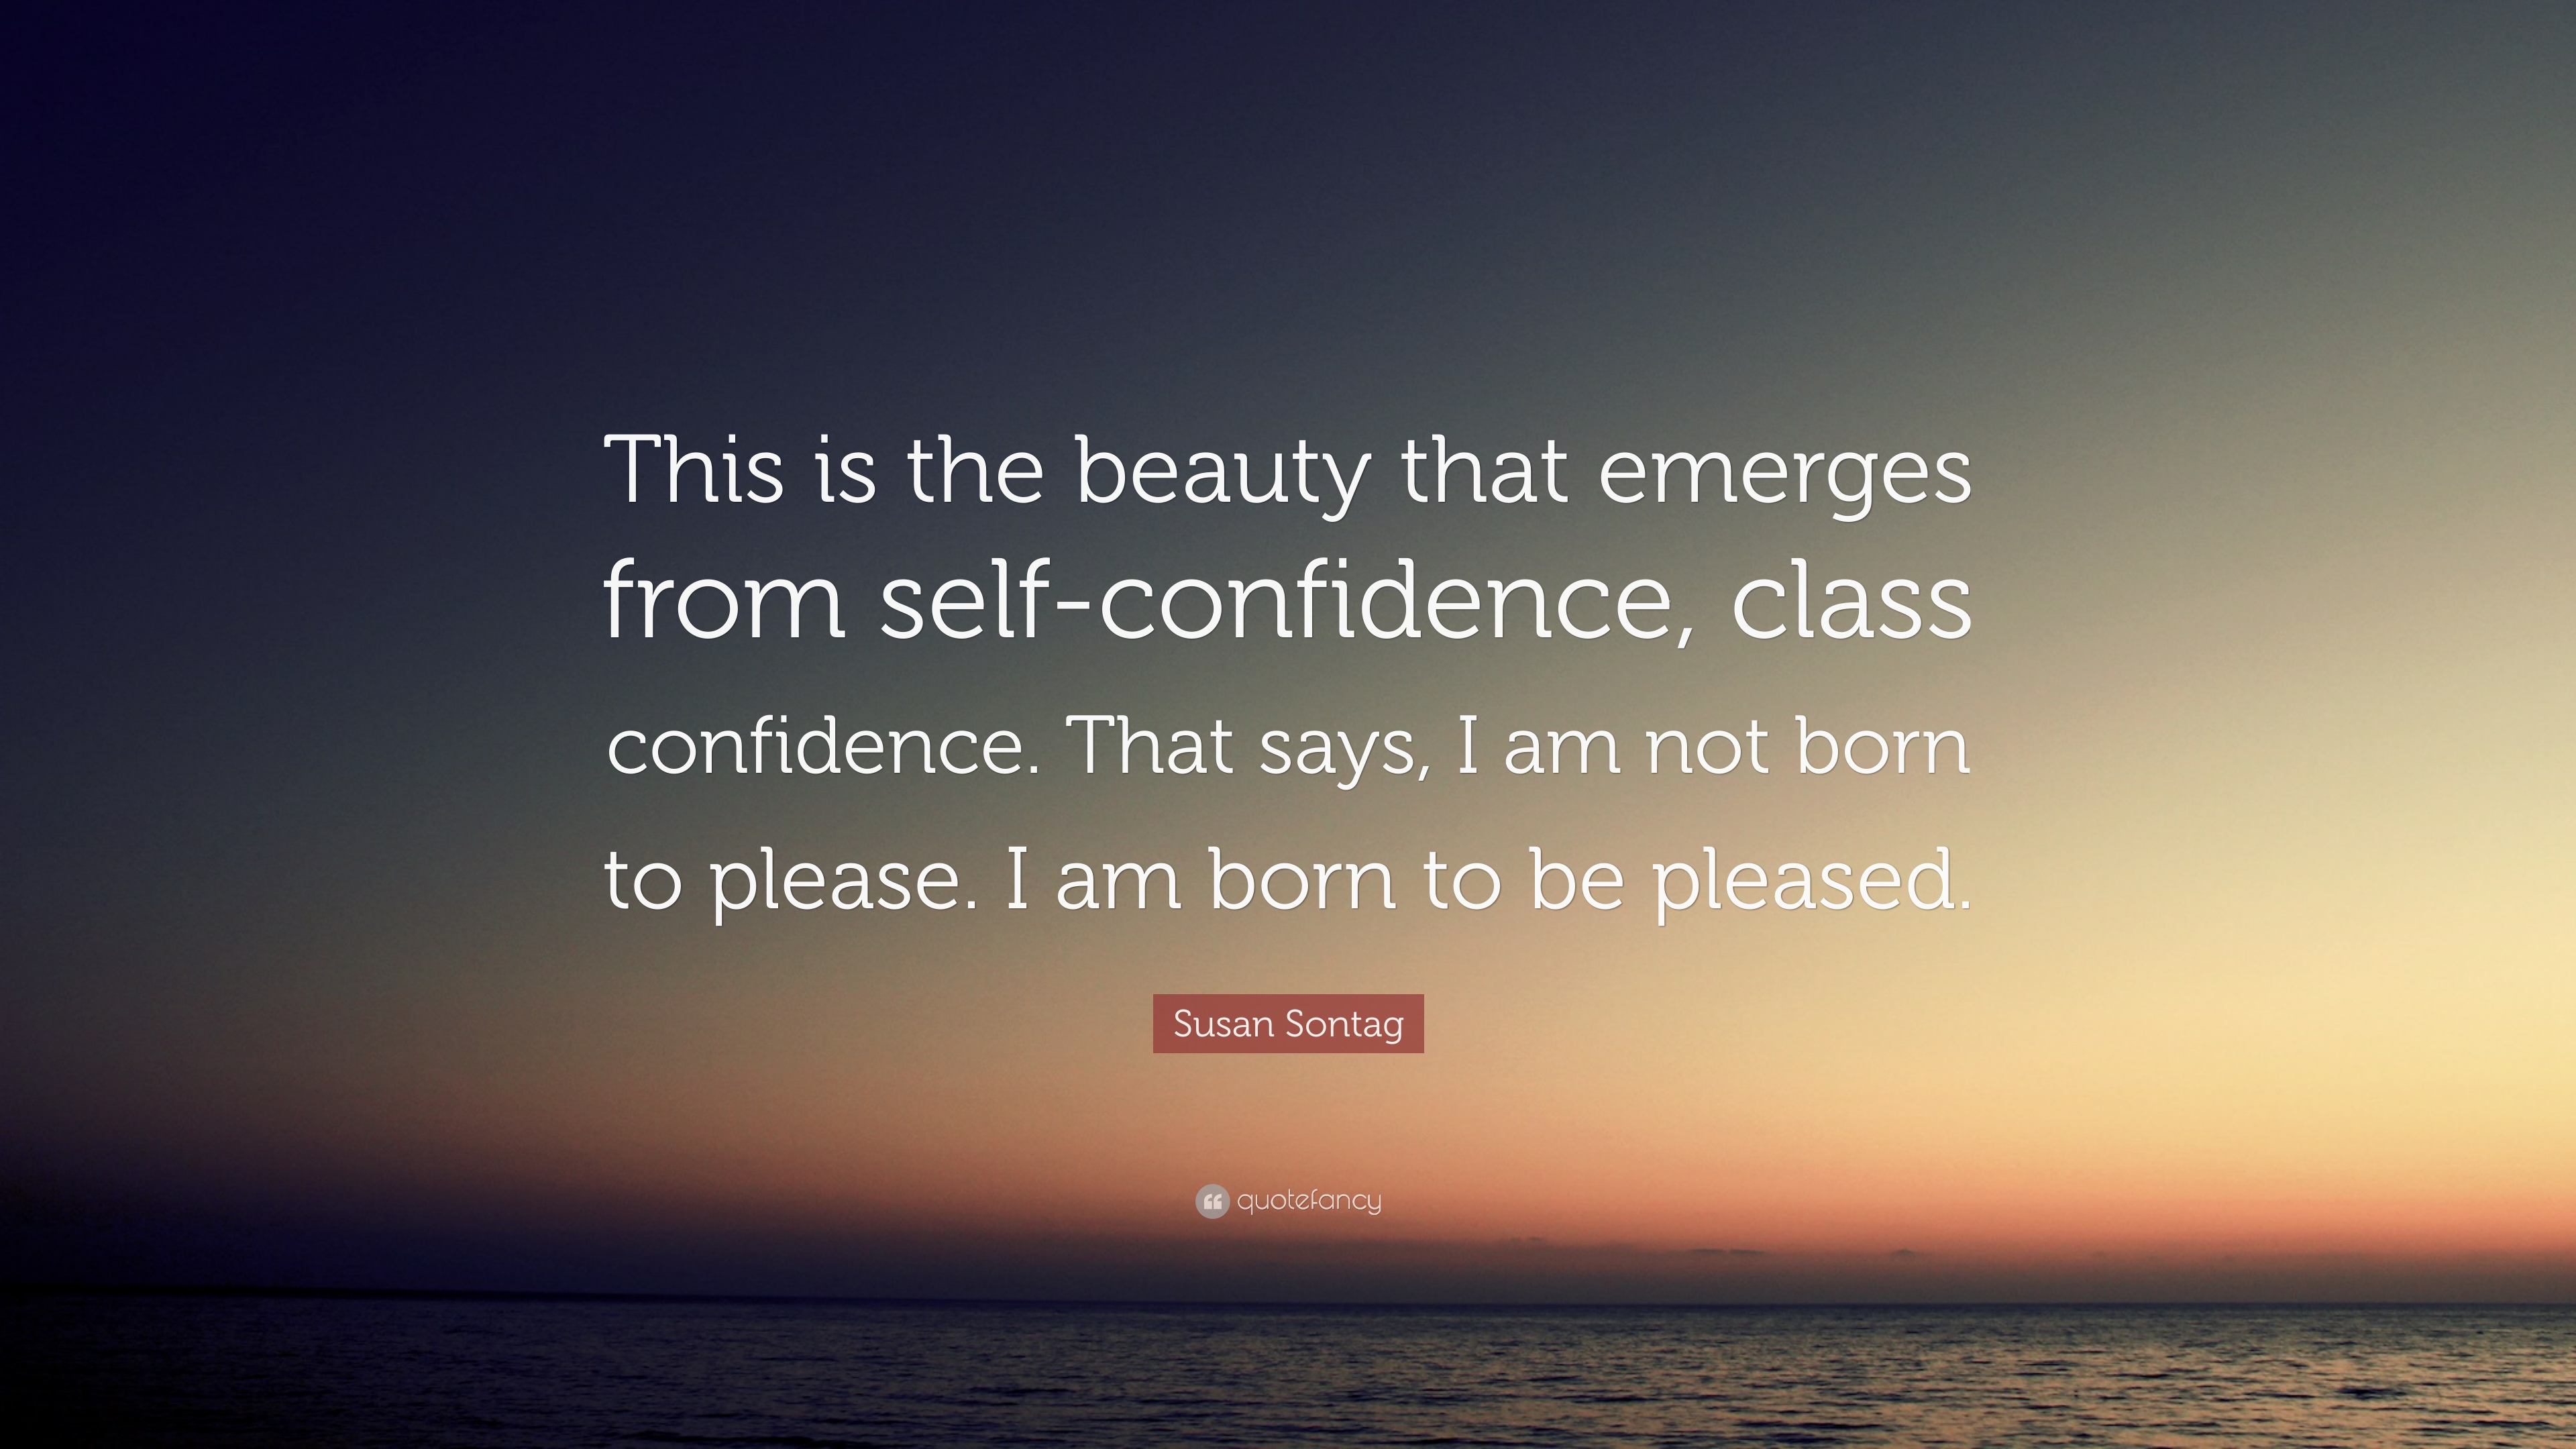 Susan Sontag Quote This Is The Beauty That Emerges From Self